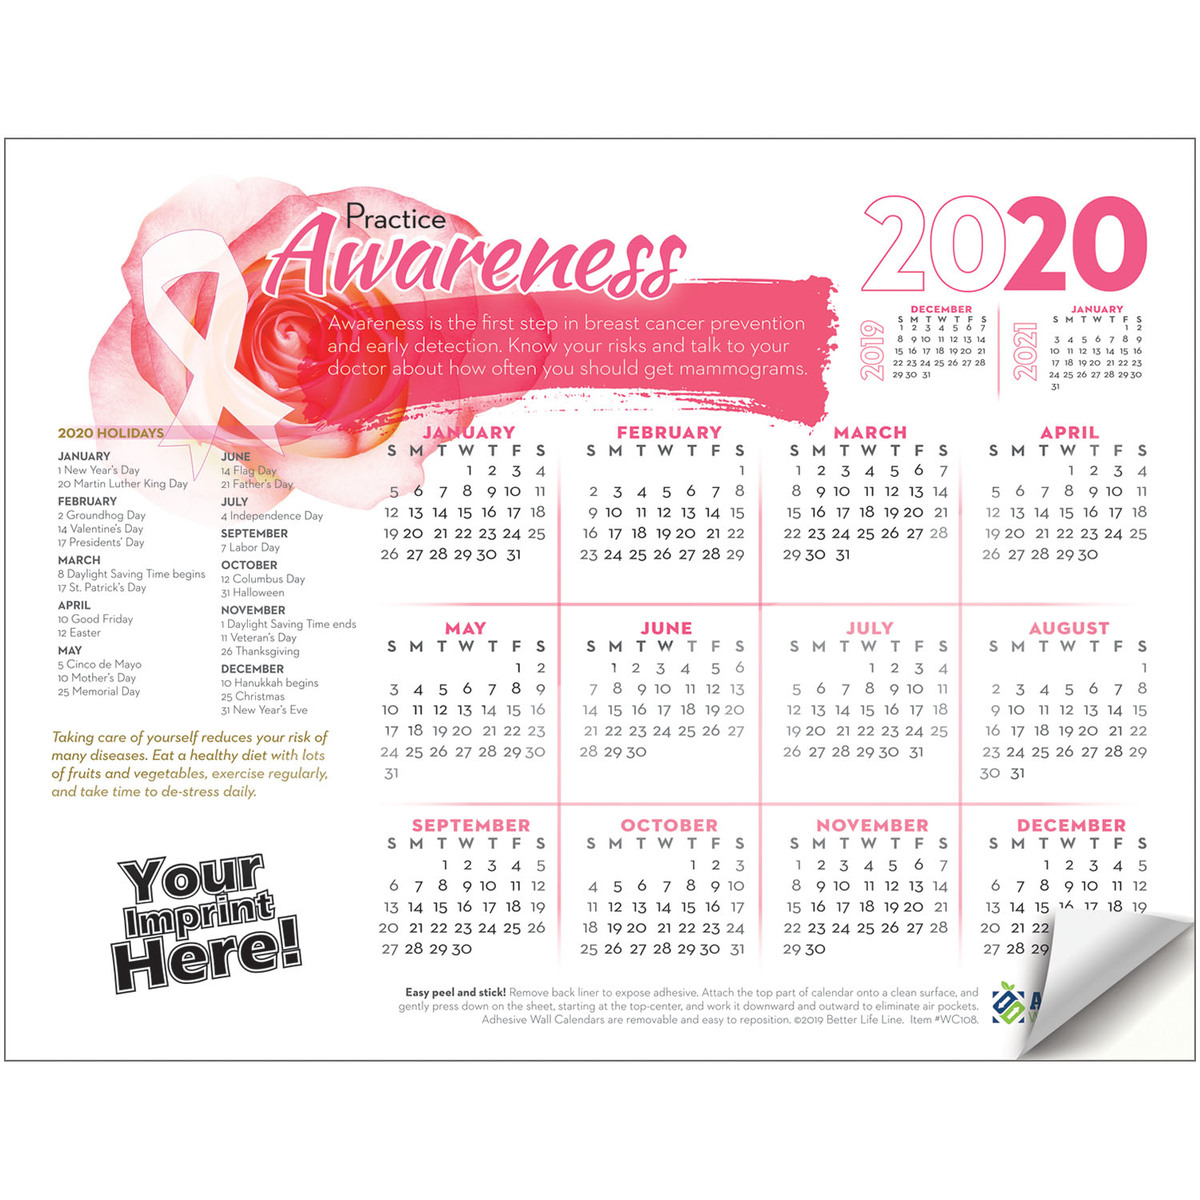 Awareness Calendar 2020 Adhesive Wall Calendar   2020 Practice Awareness (Breast Cancer